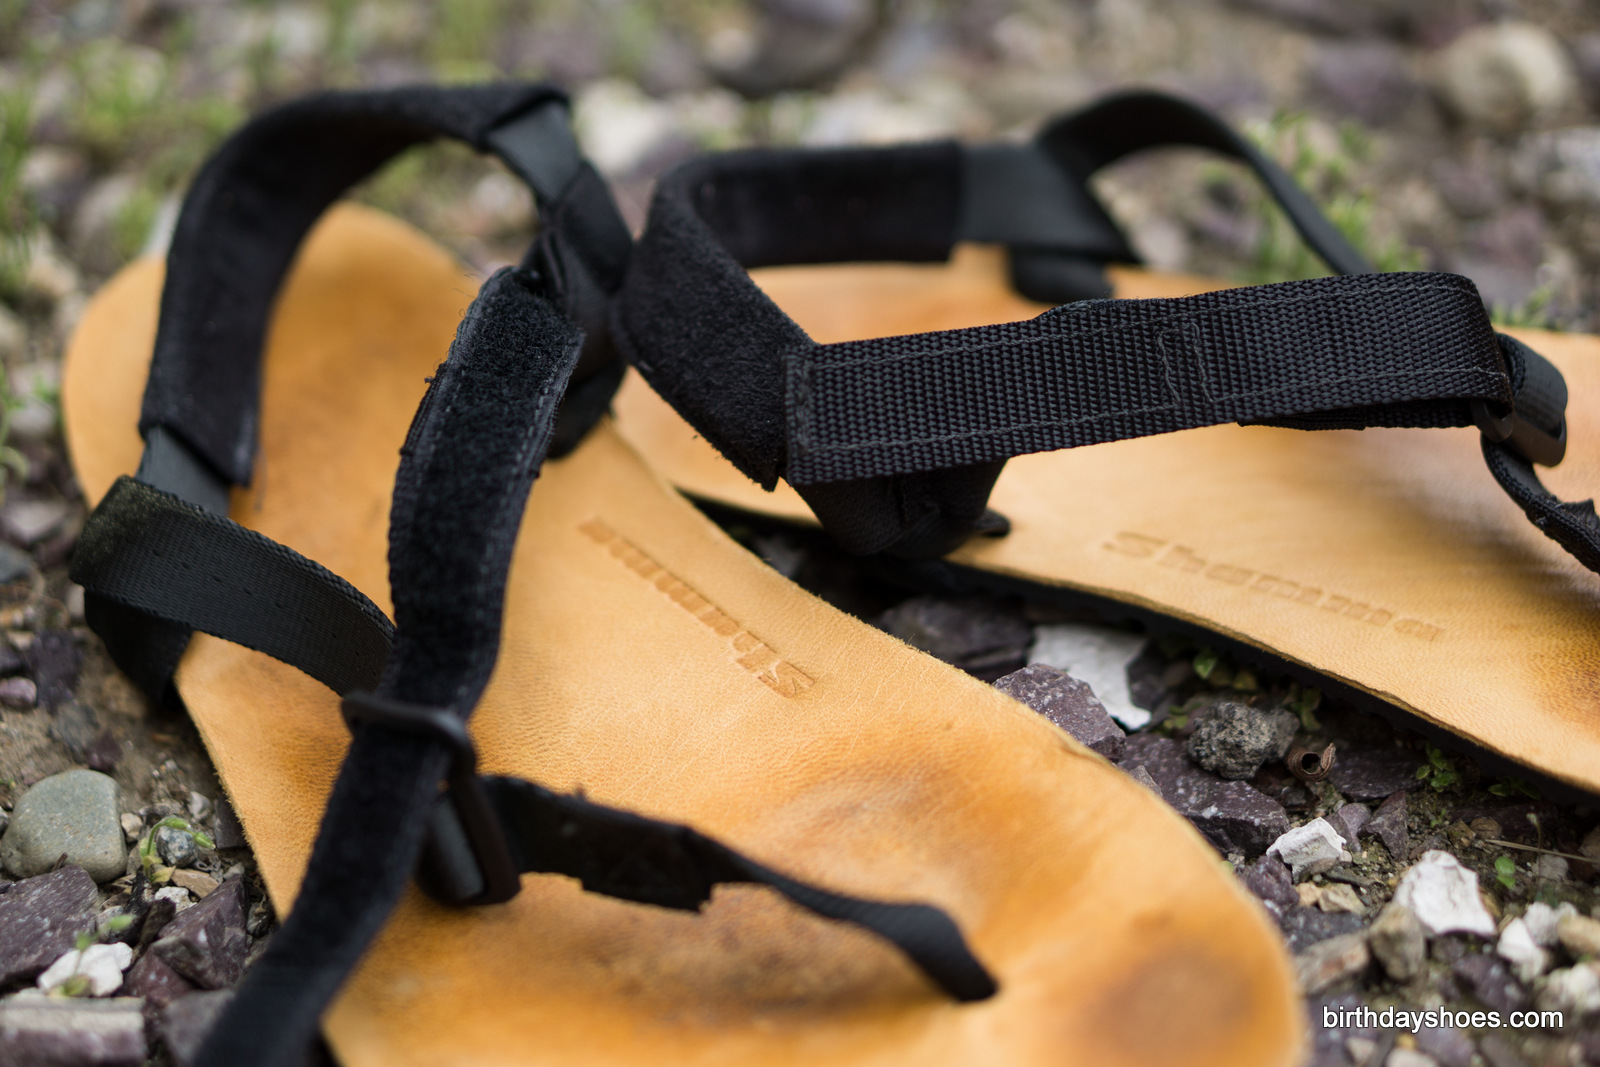 The Shamma Sandals Warrior, showing the velcro strap system.